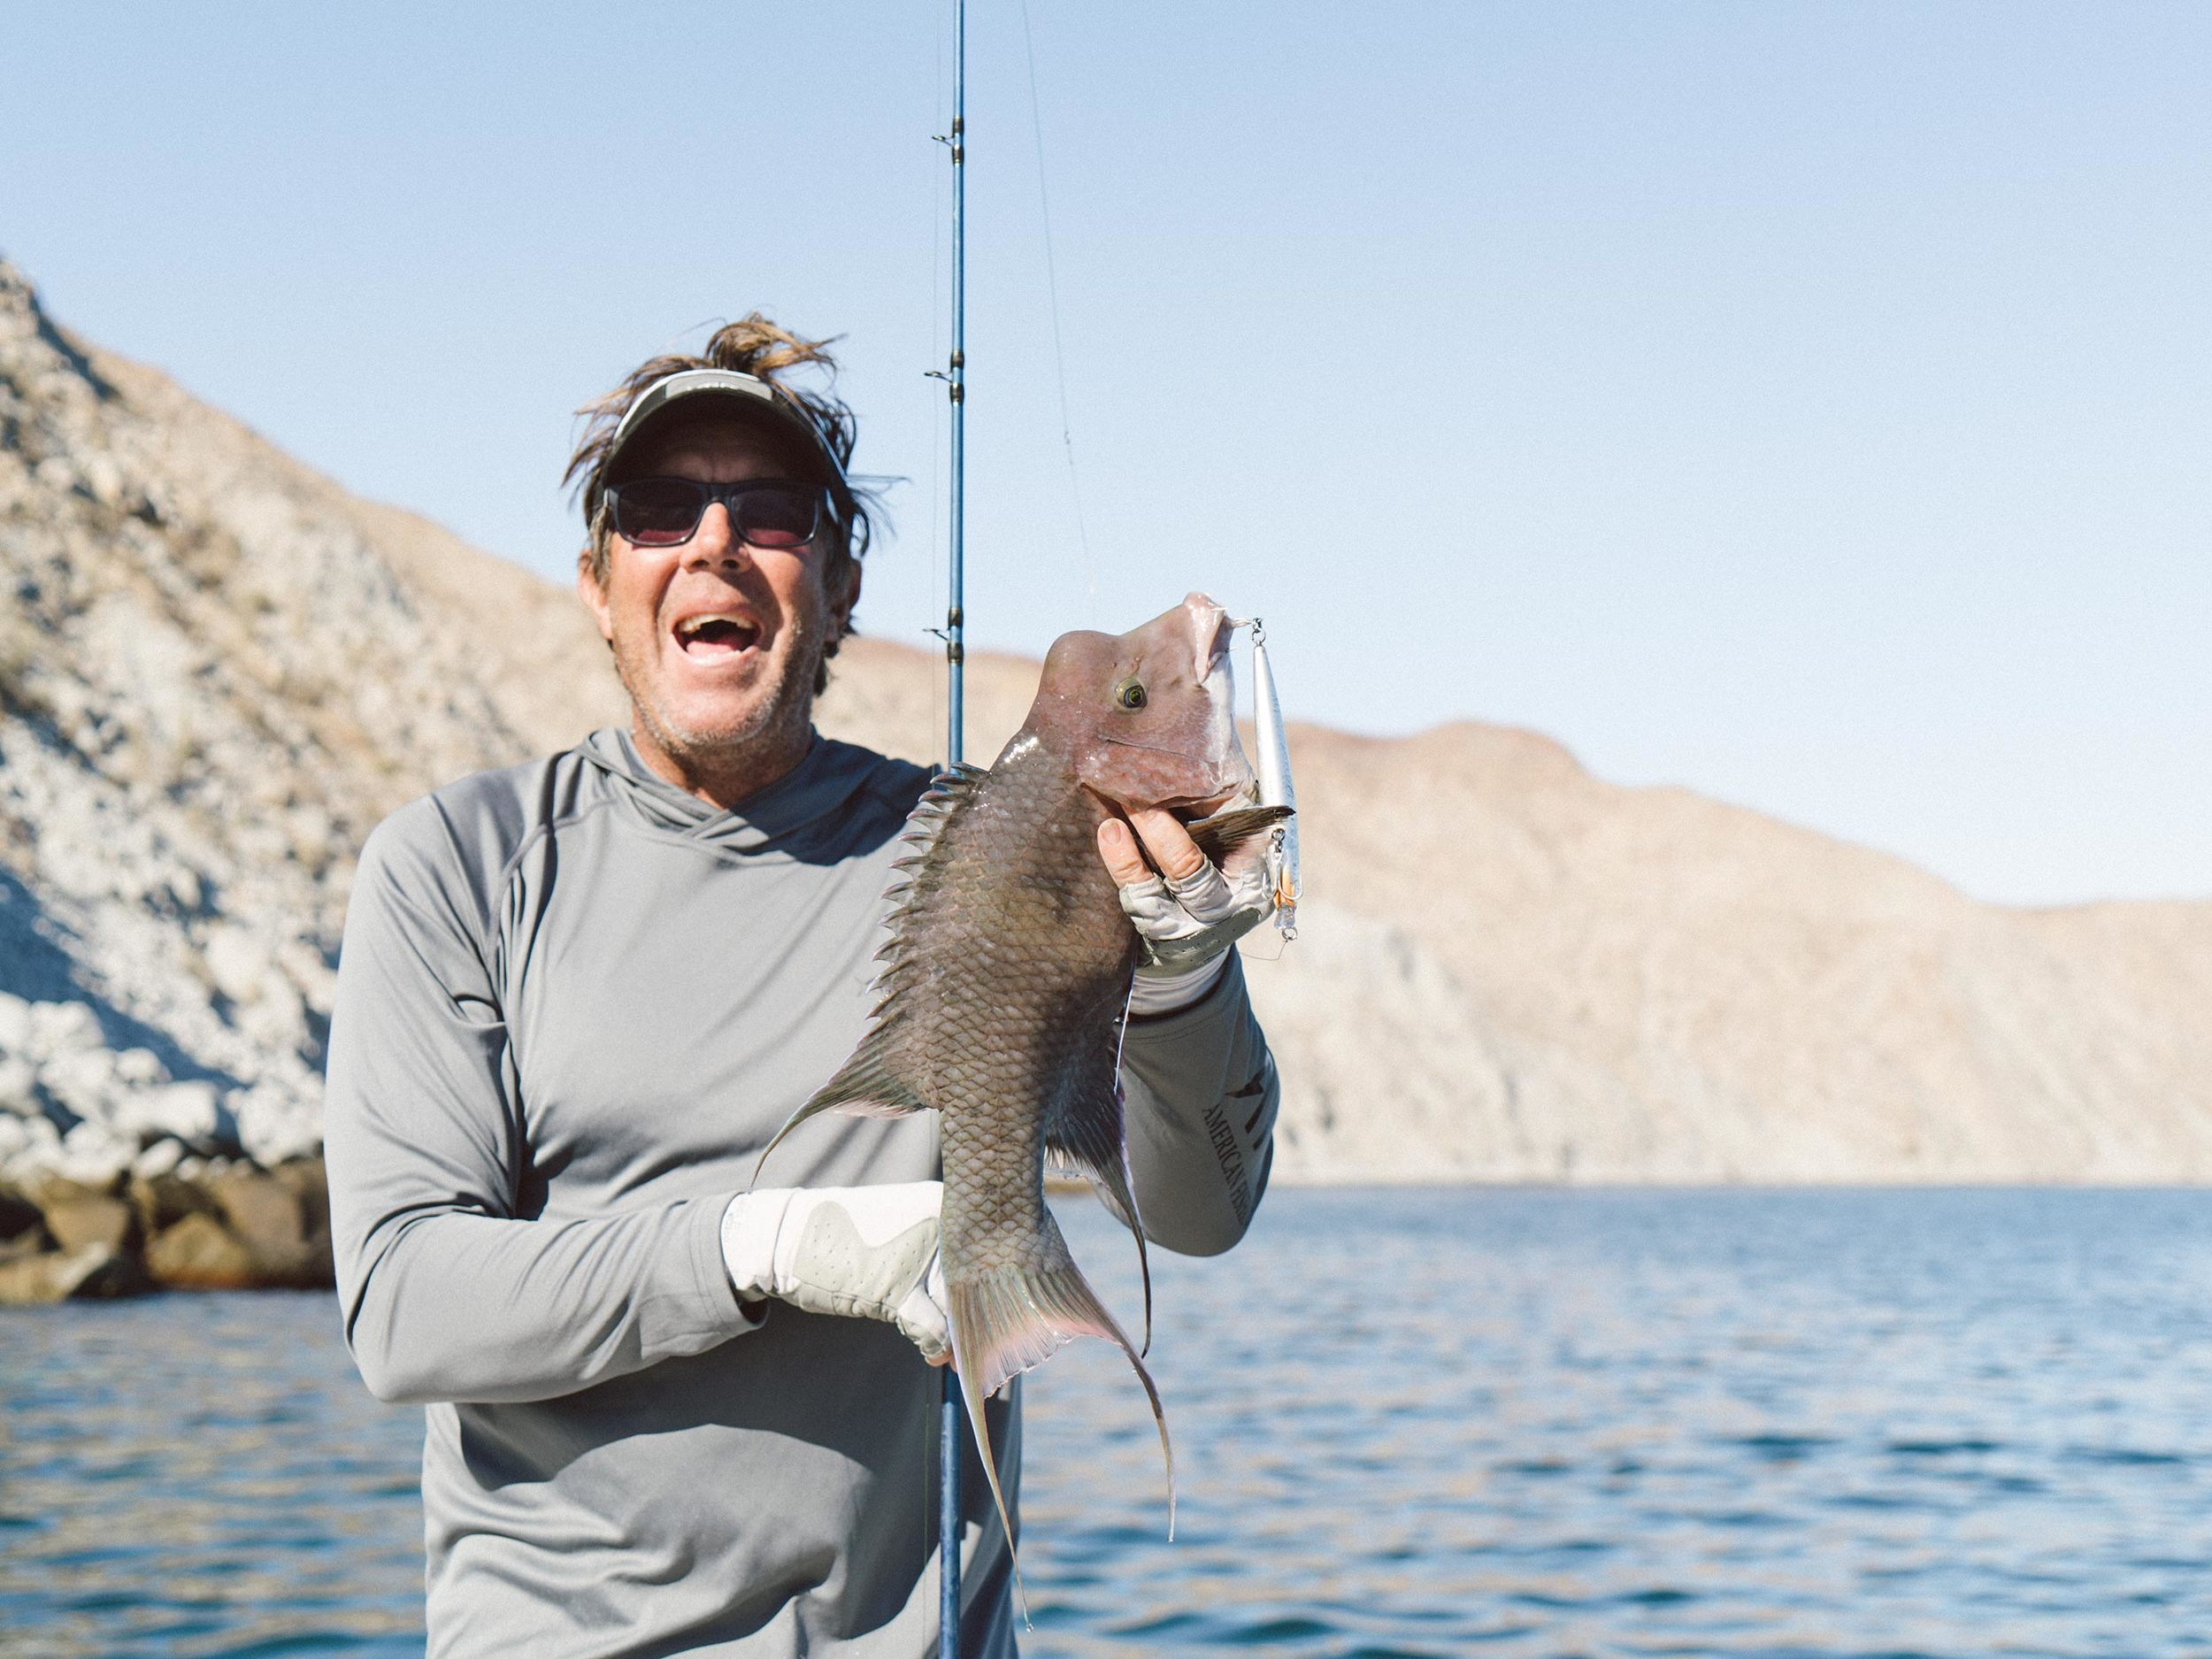 Capt. Jimmy Decker was species king with a true Sea of Cortez variety pack. Here he adds a Hogfish to his list.